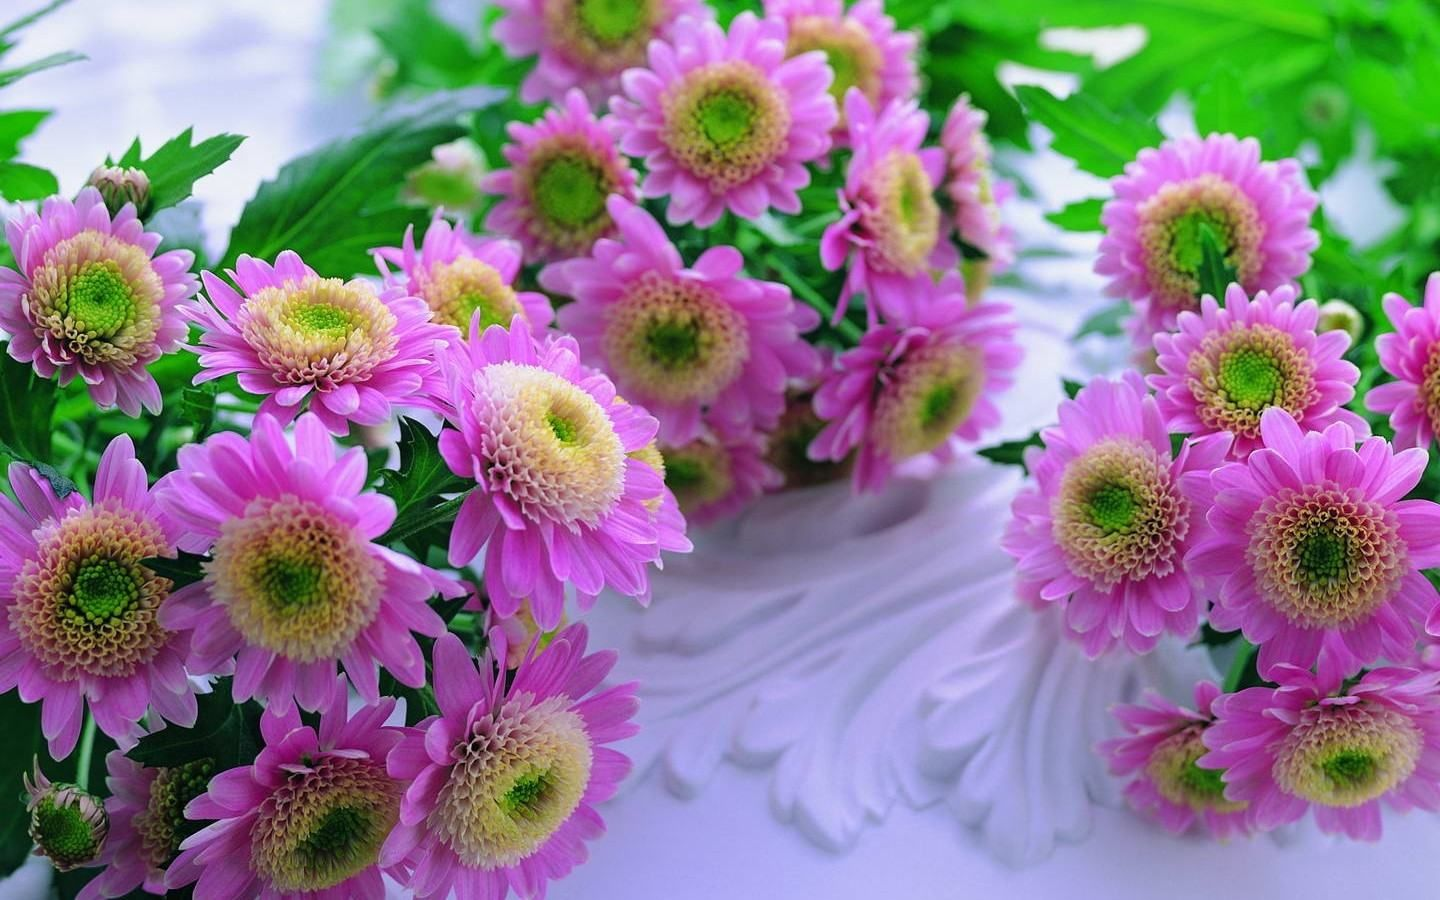 flowers background pictures for desktop free download hd, background